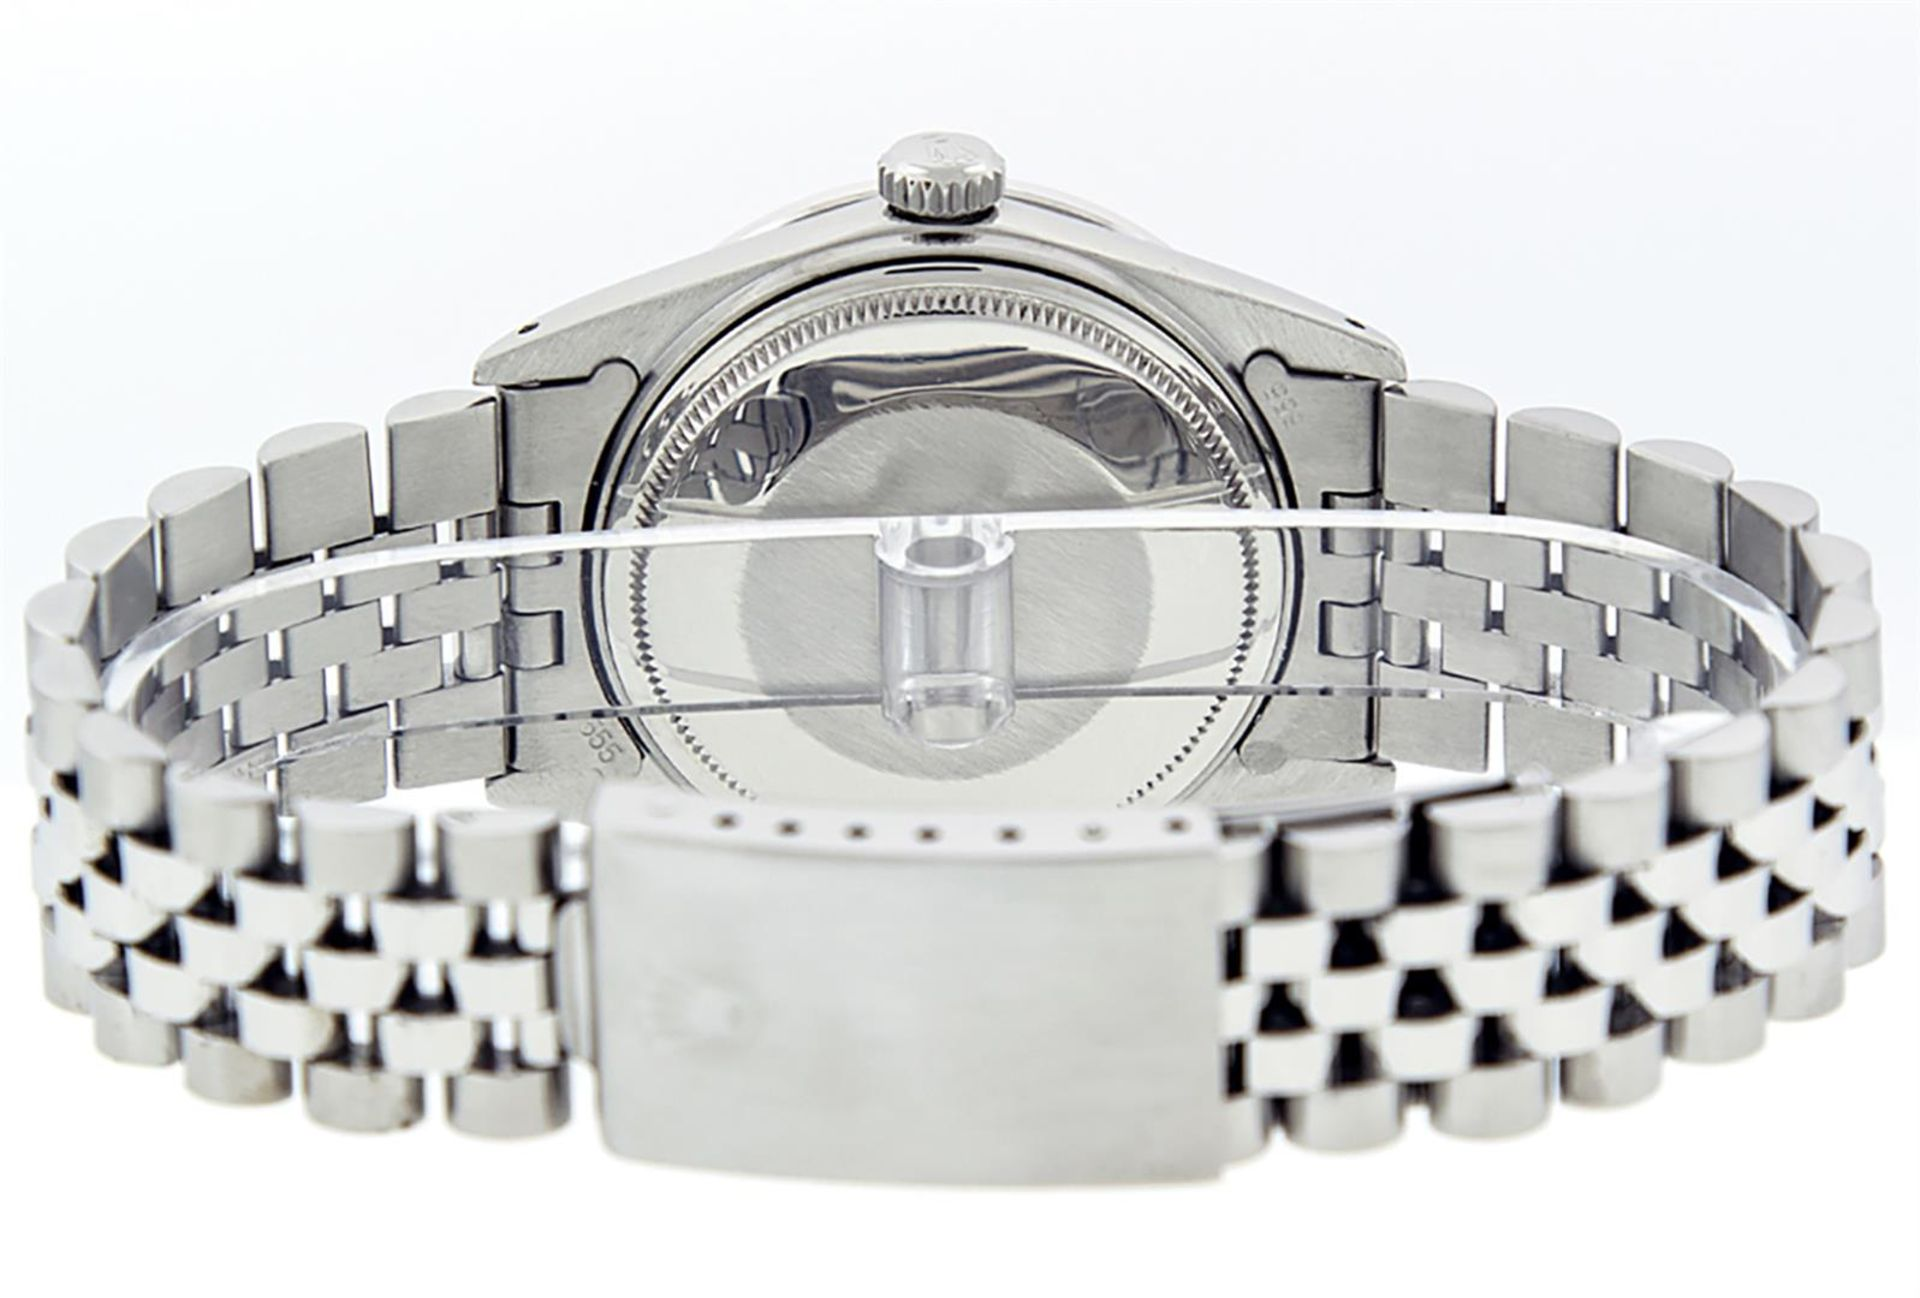 Rolex Mens Stainless Steel Mother Of Pearl Diamond & Sapphire Datejust Wristwatc - Image 6 of 8